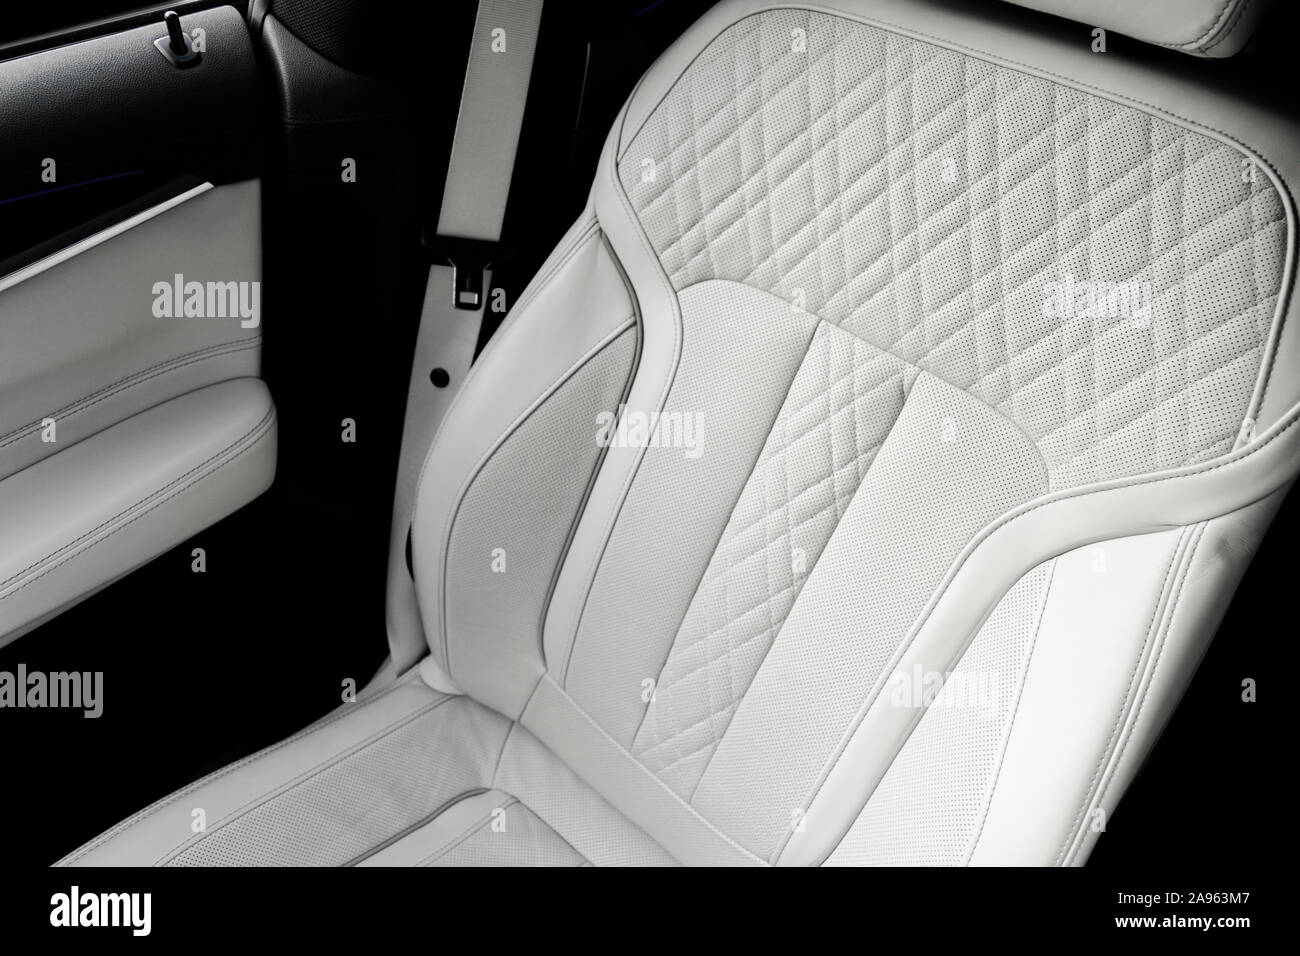 White Leather Interior Of The Luxury Modern Car Perforated White Leather Comfortable Seats With Stitching Modern Car Interior Details Car Detailing Stock Photo Alamy